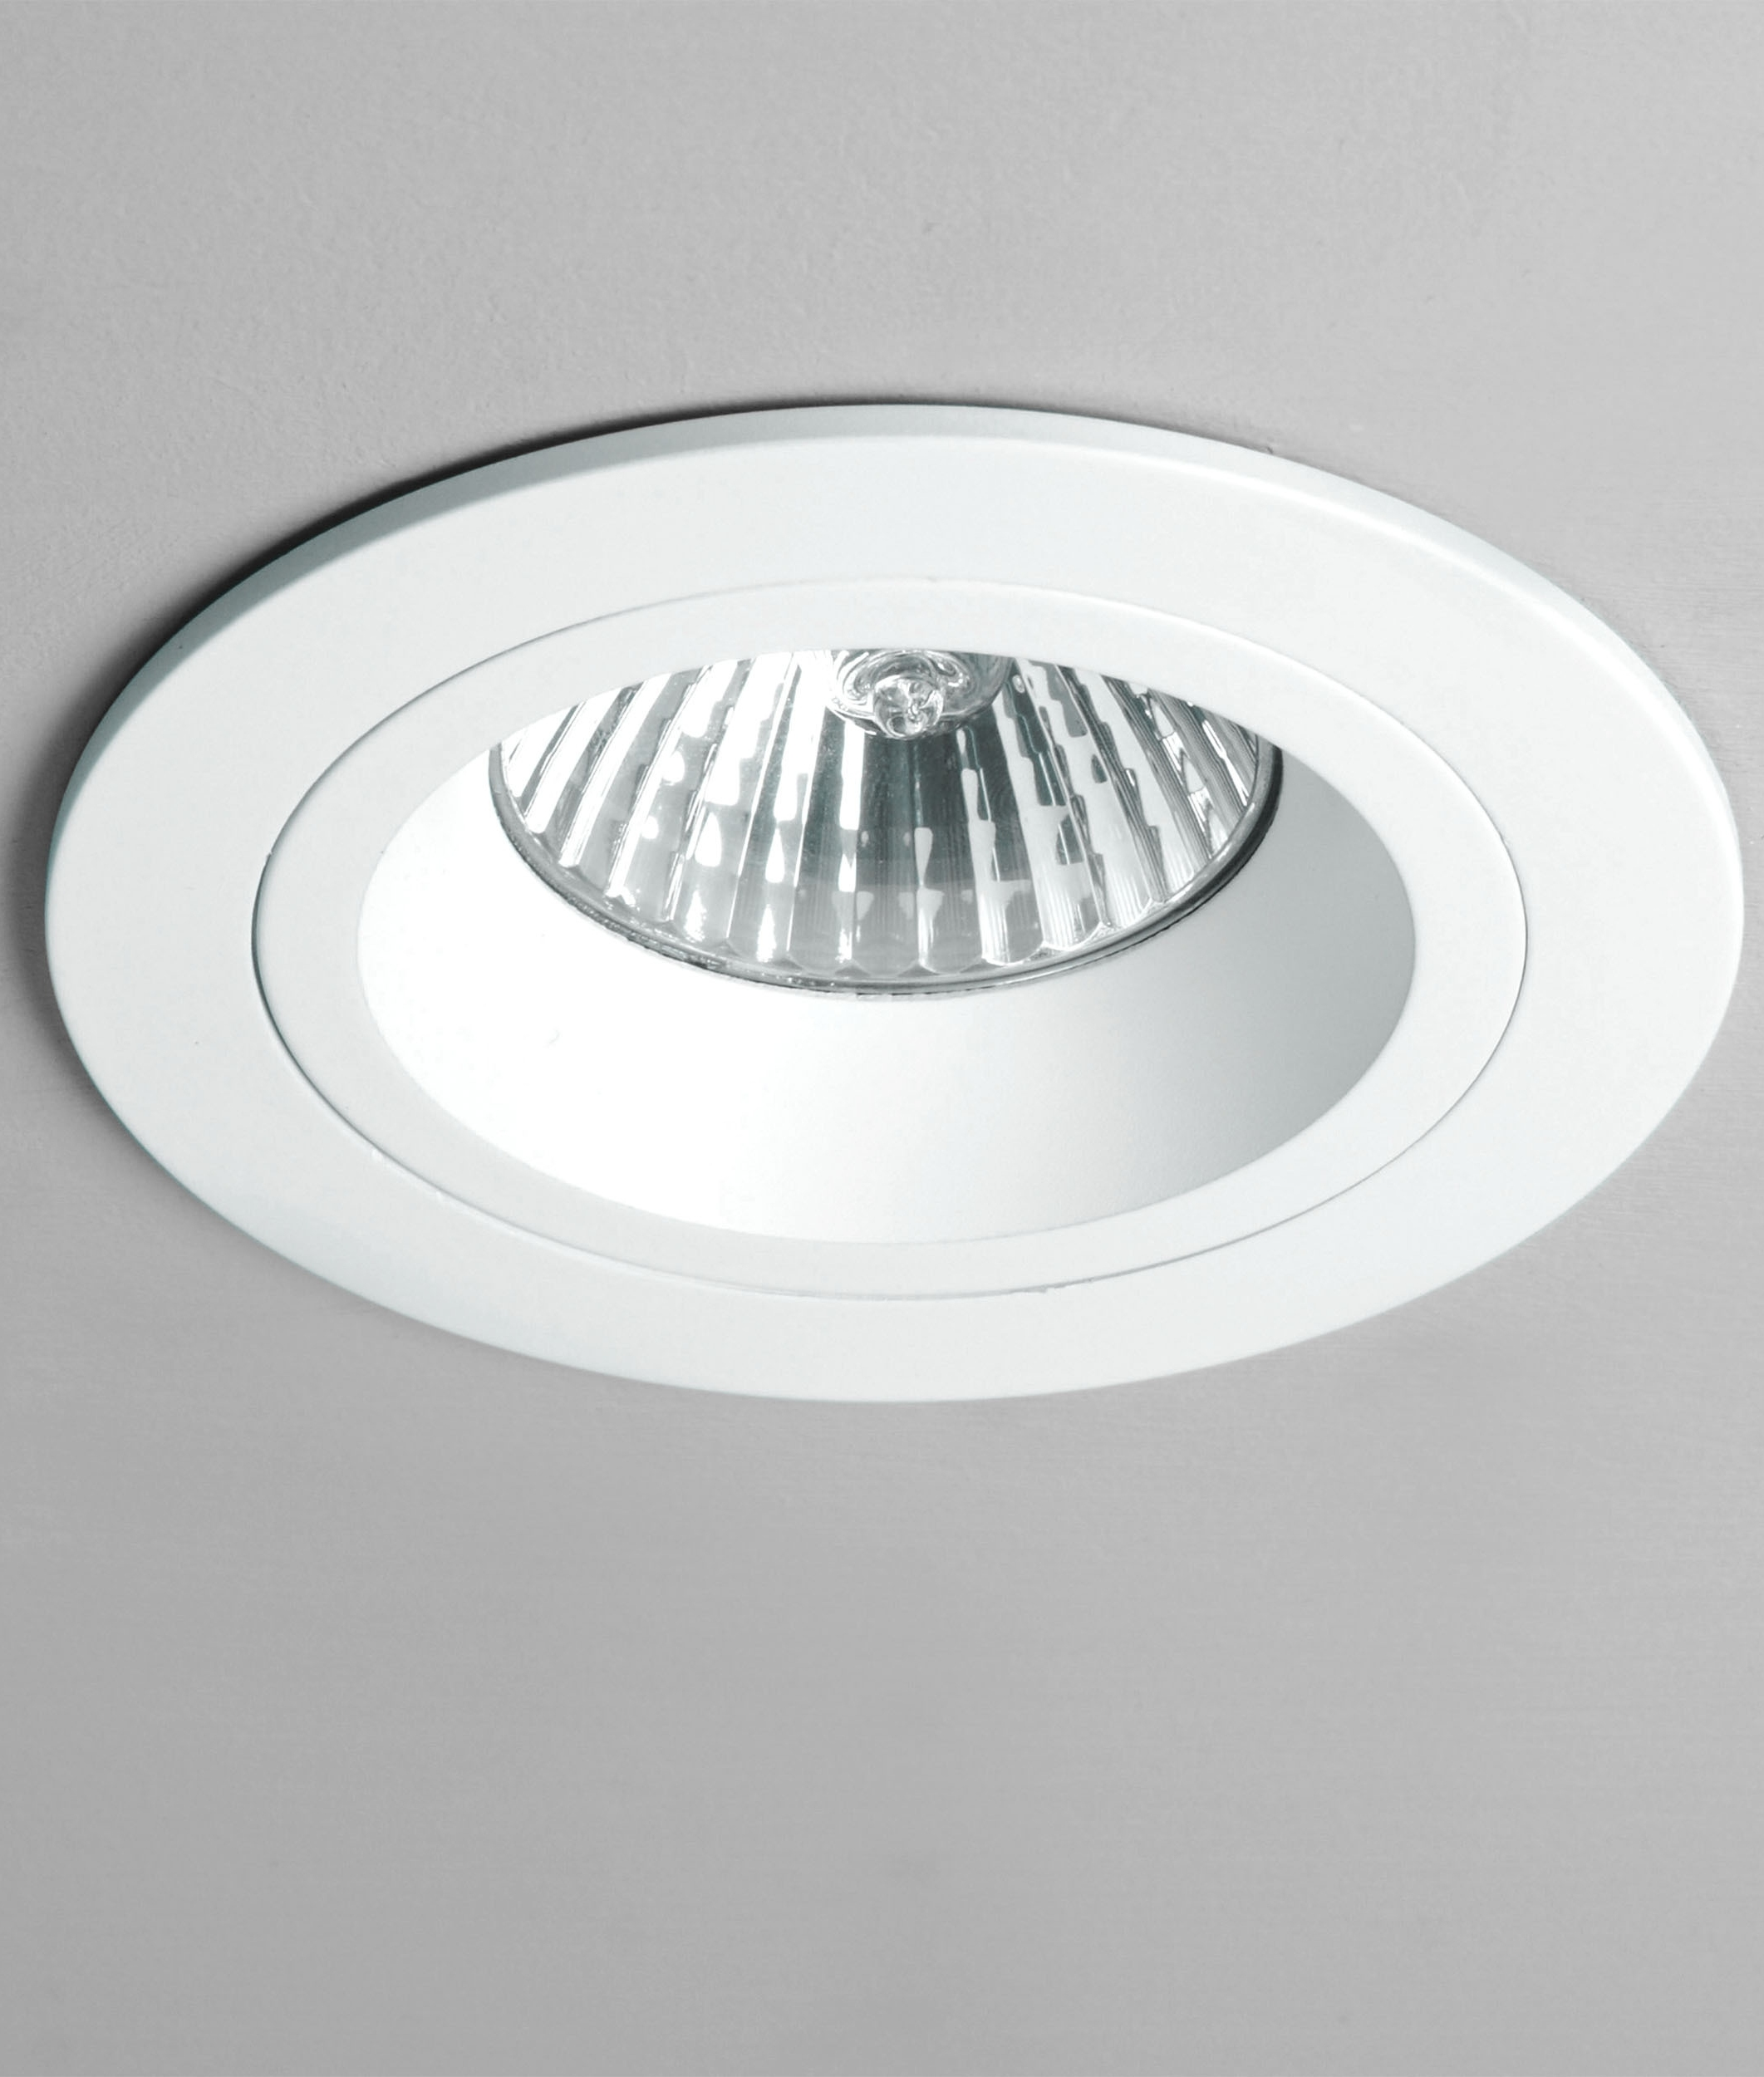 Fixed Round Mains Downlight- Saving you �2.63